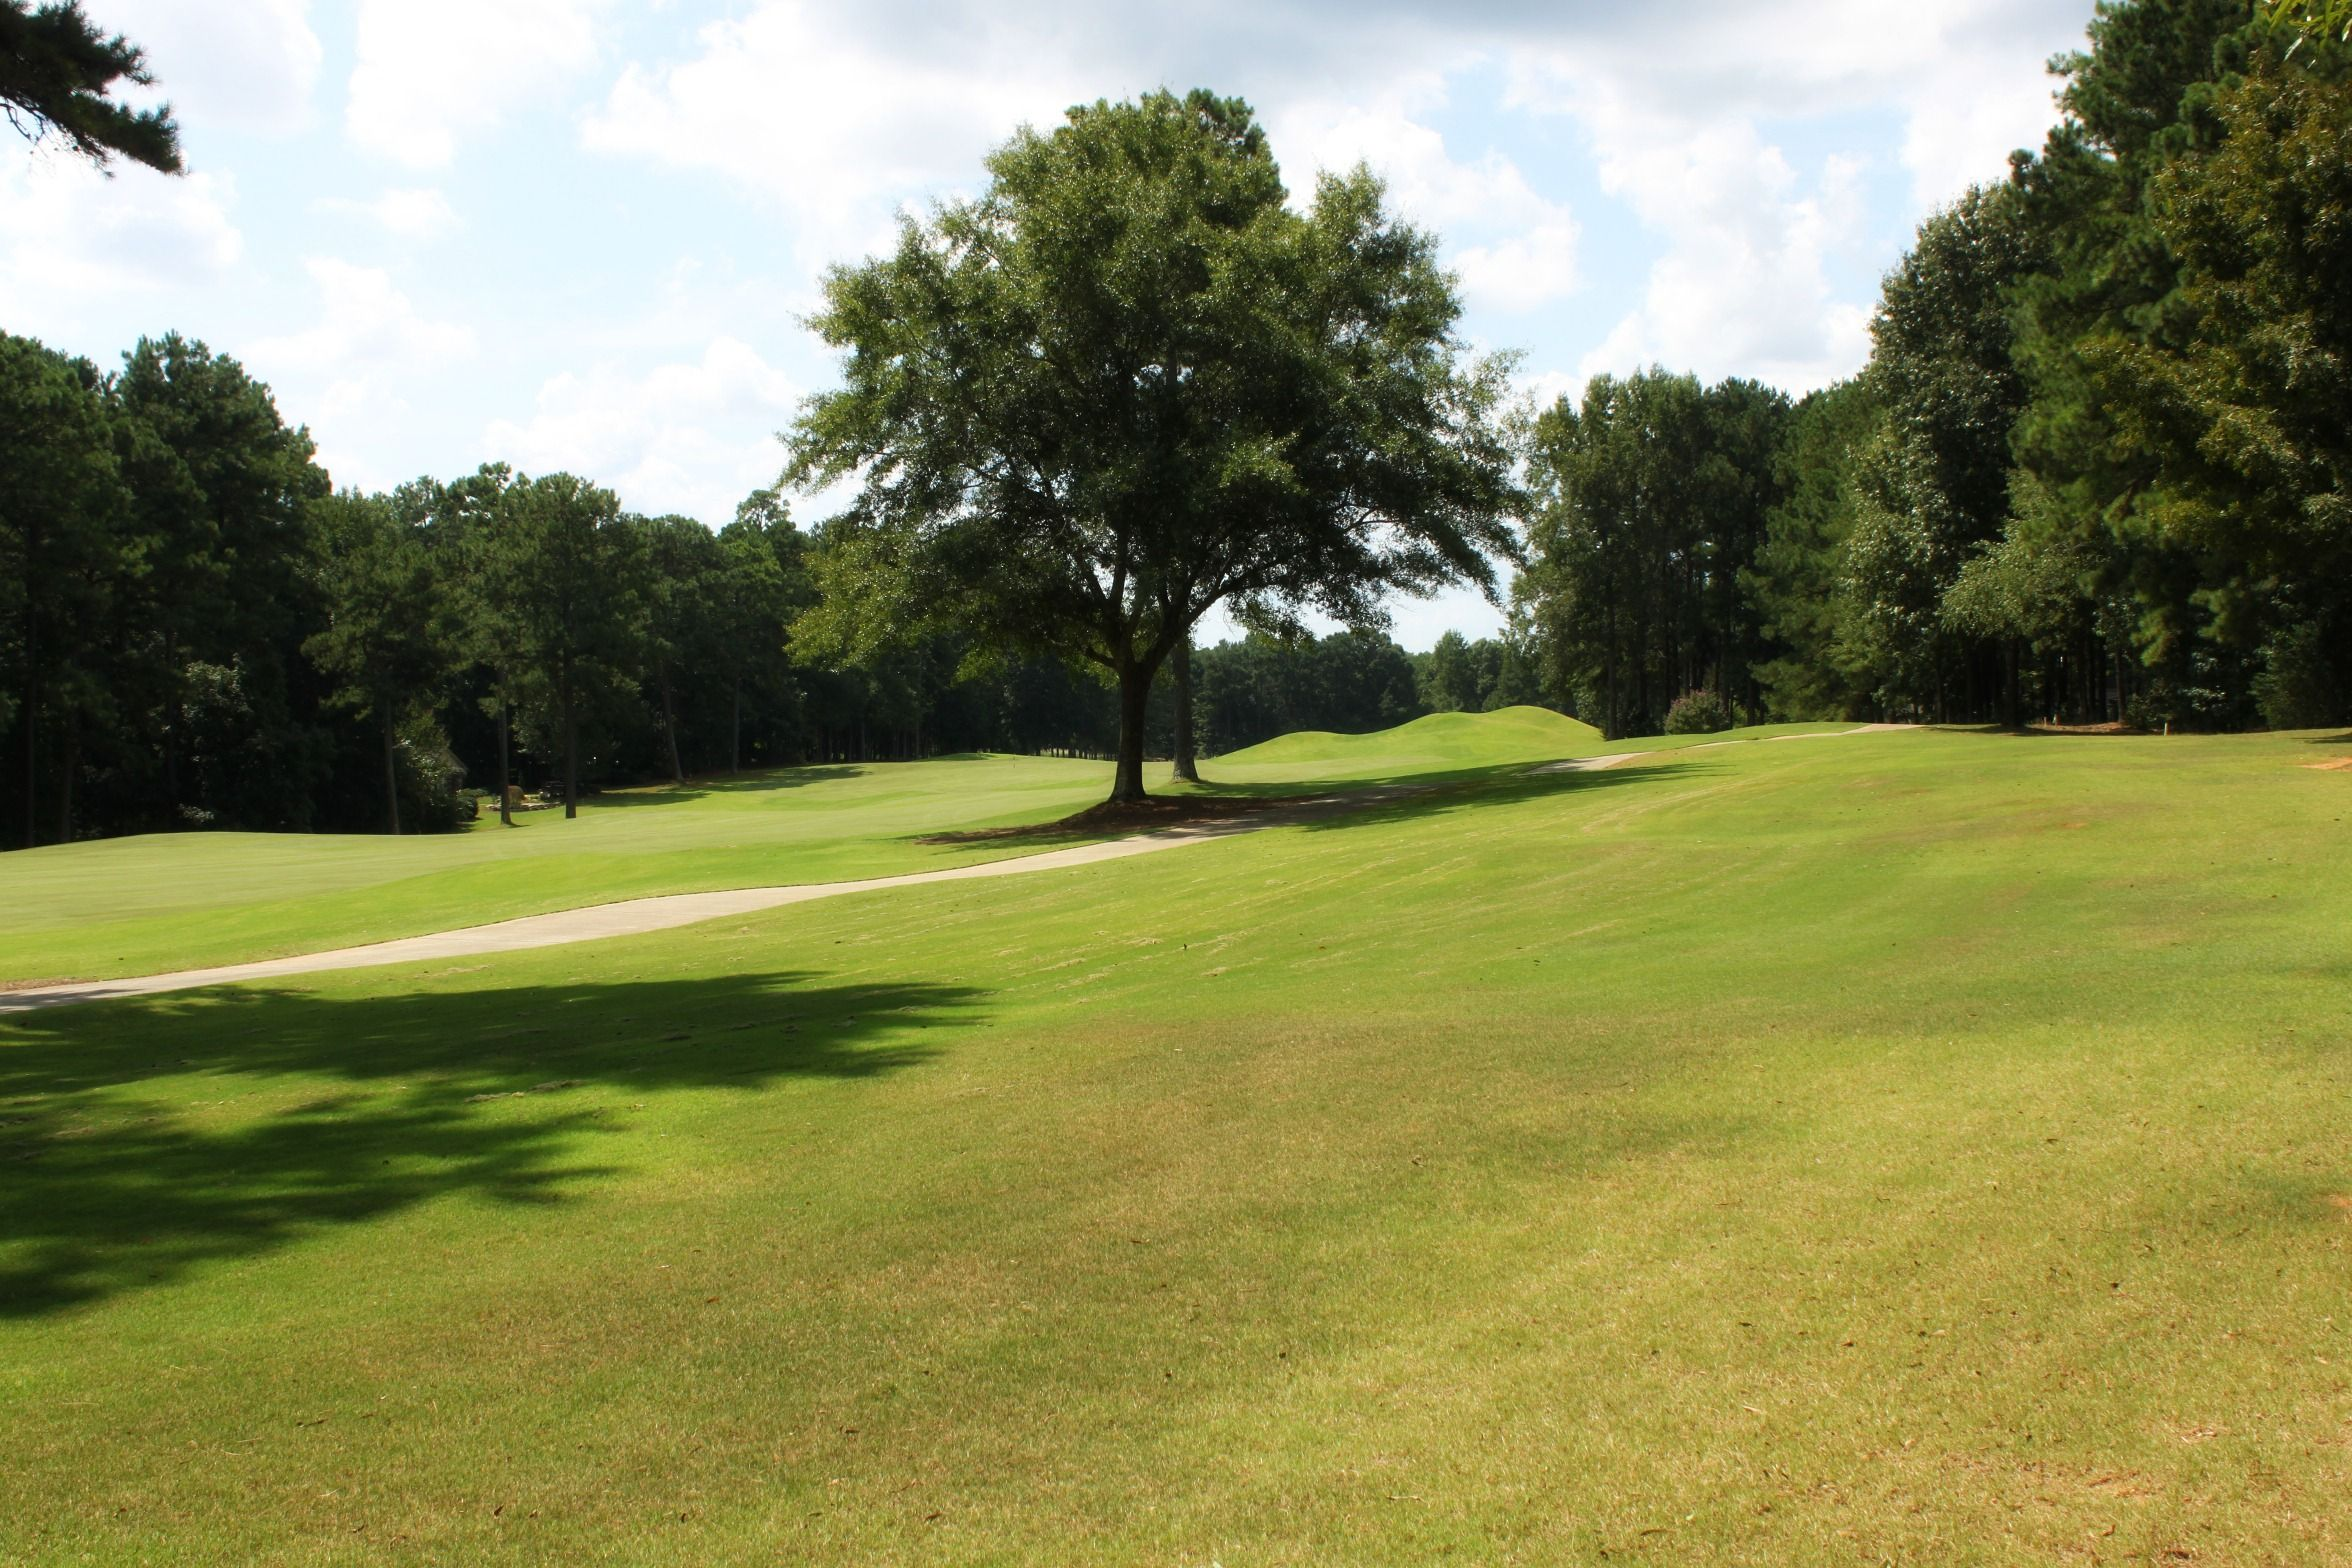 These Golf Course Views in The Landings can be yours